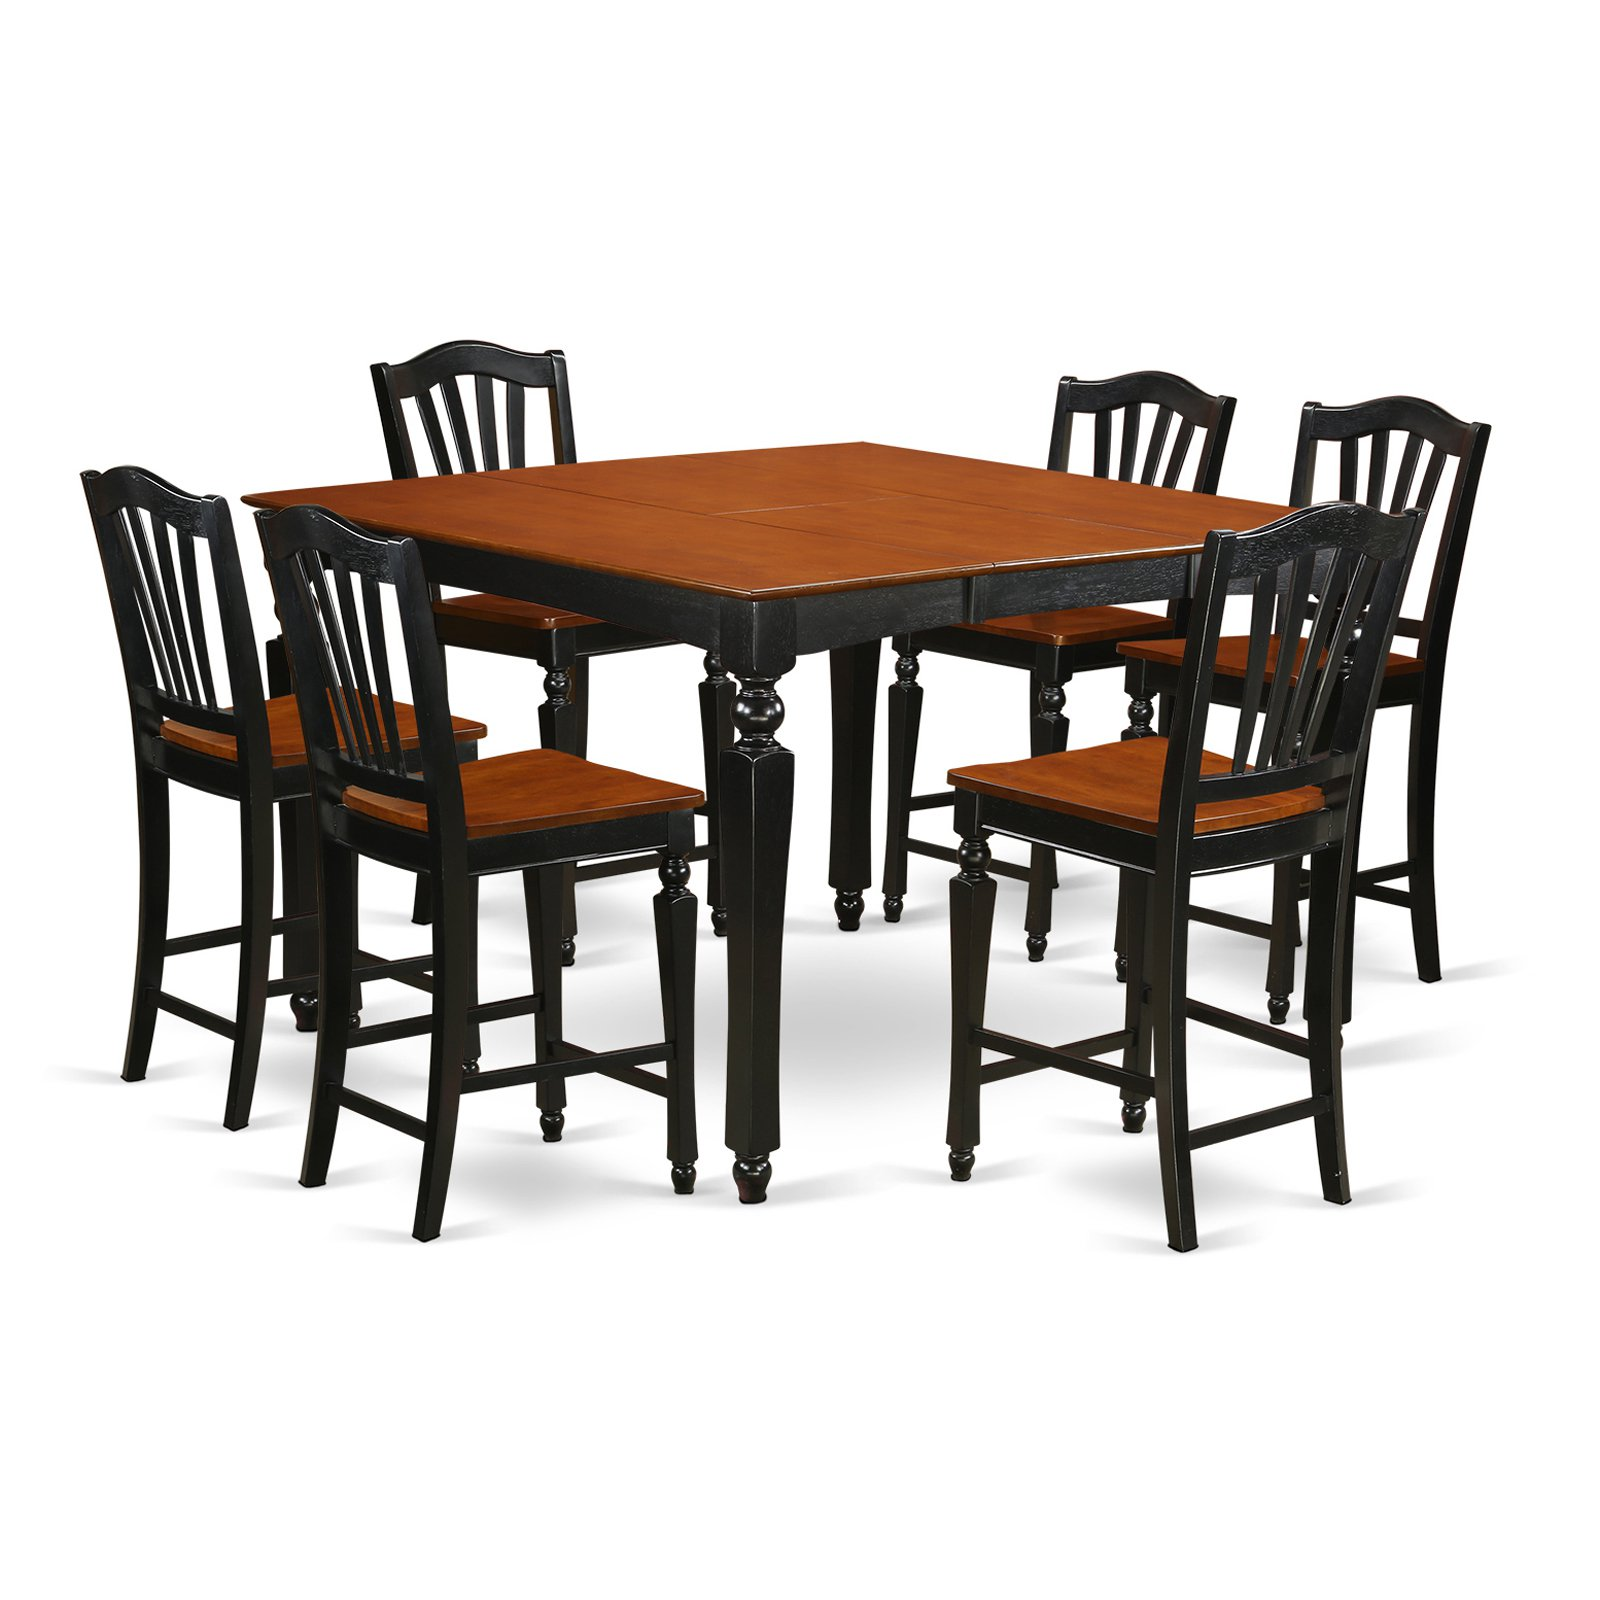 East West Furniture Chelsea 7 Piece High Splat Dining Table Set